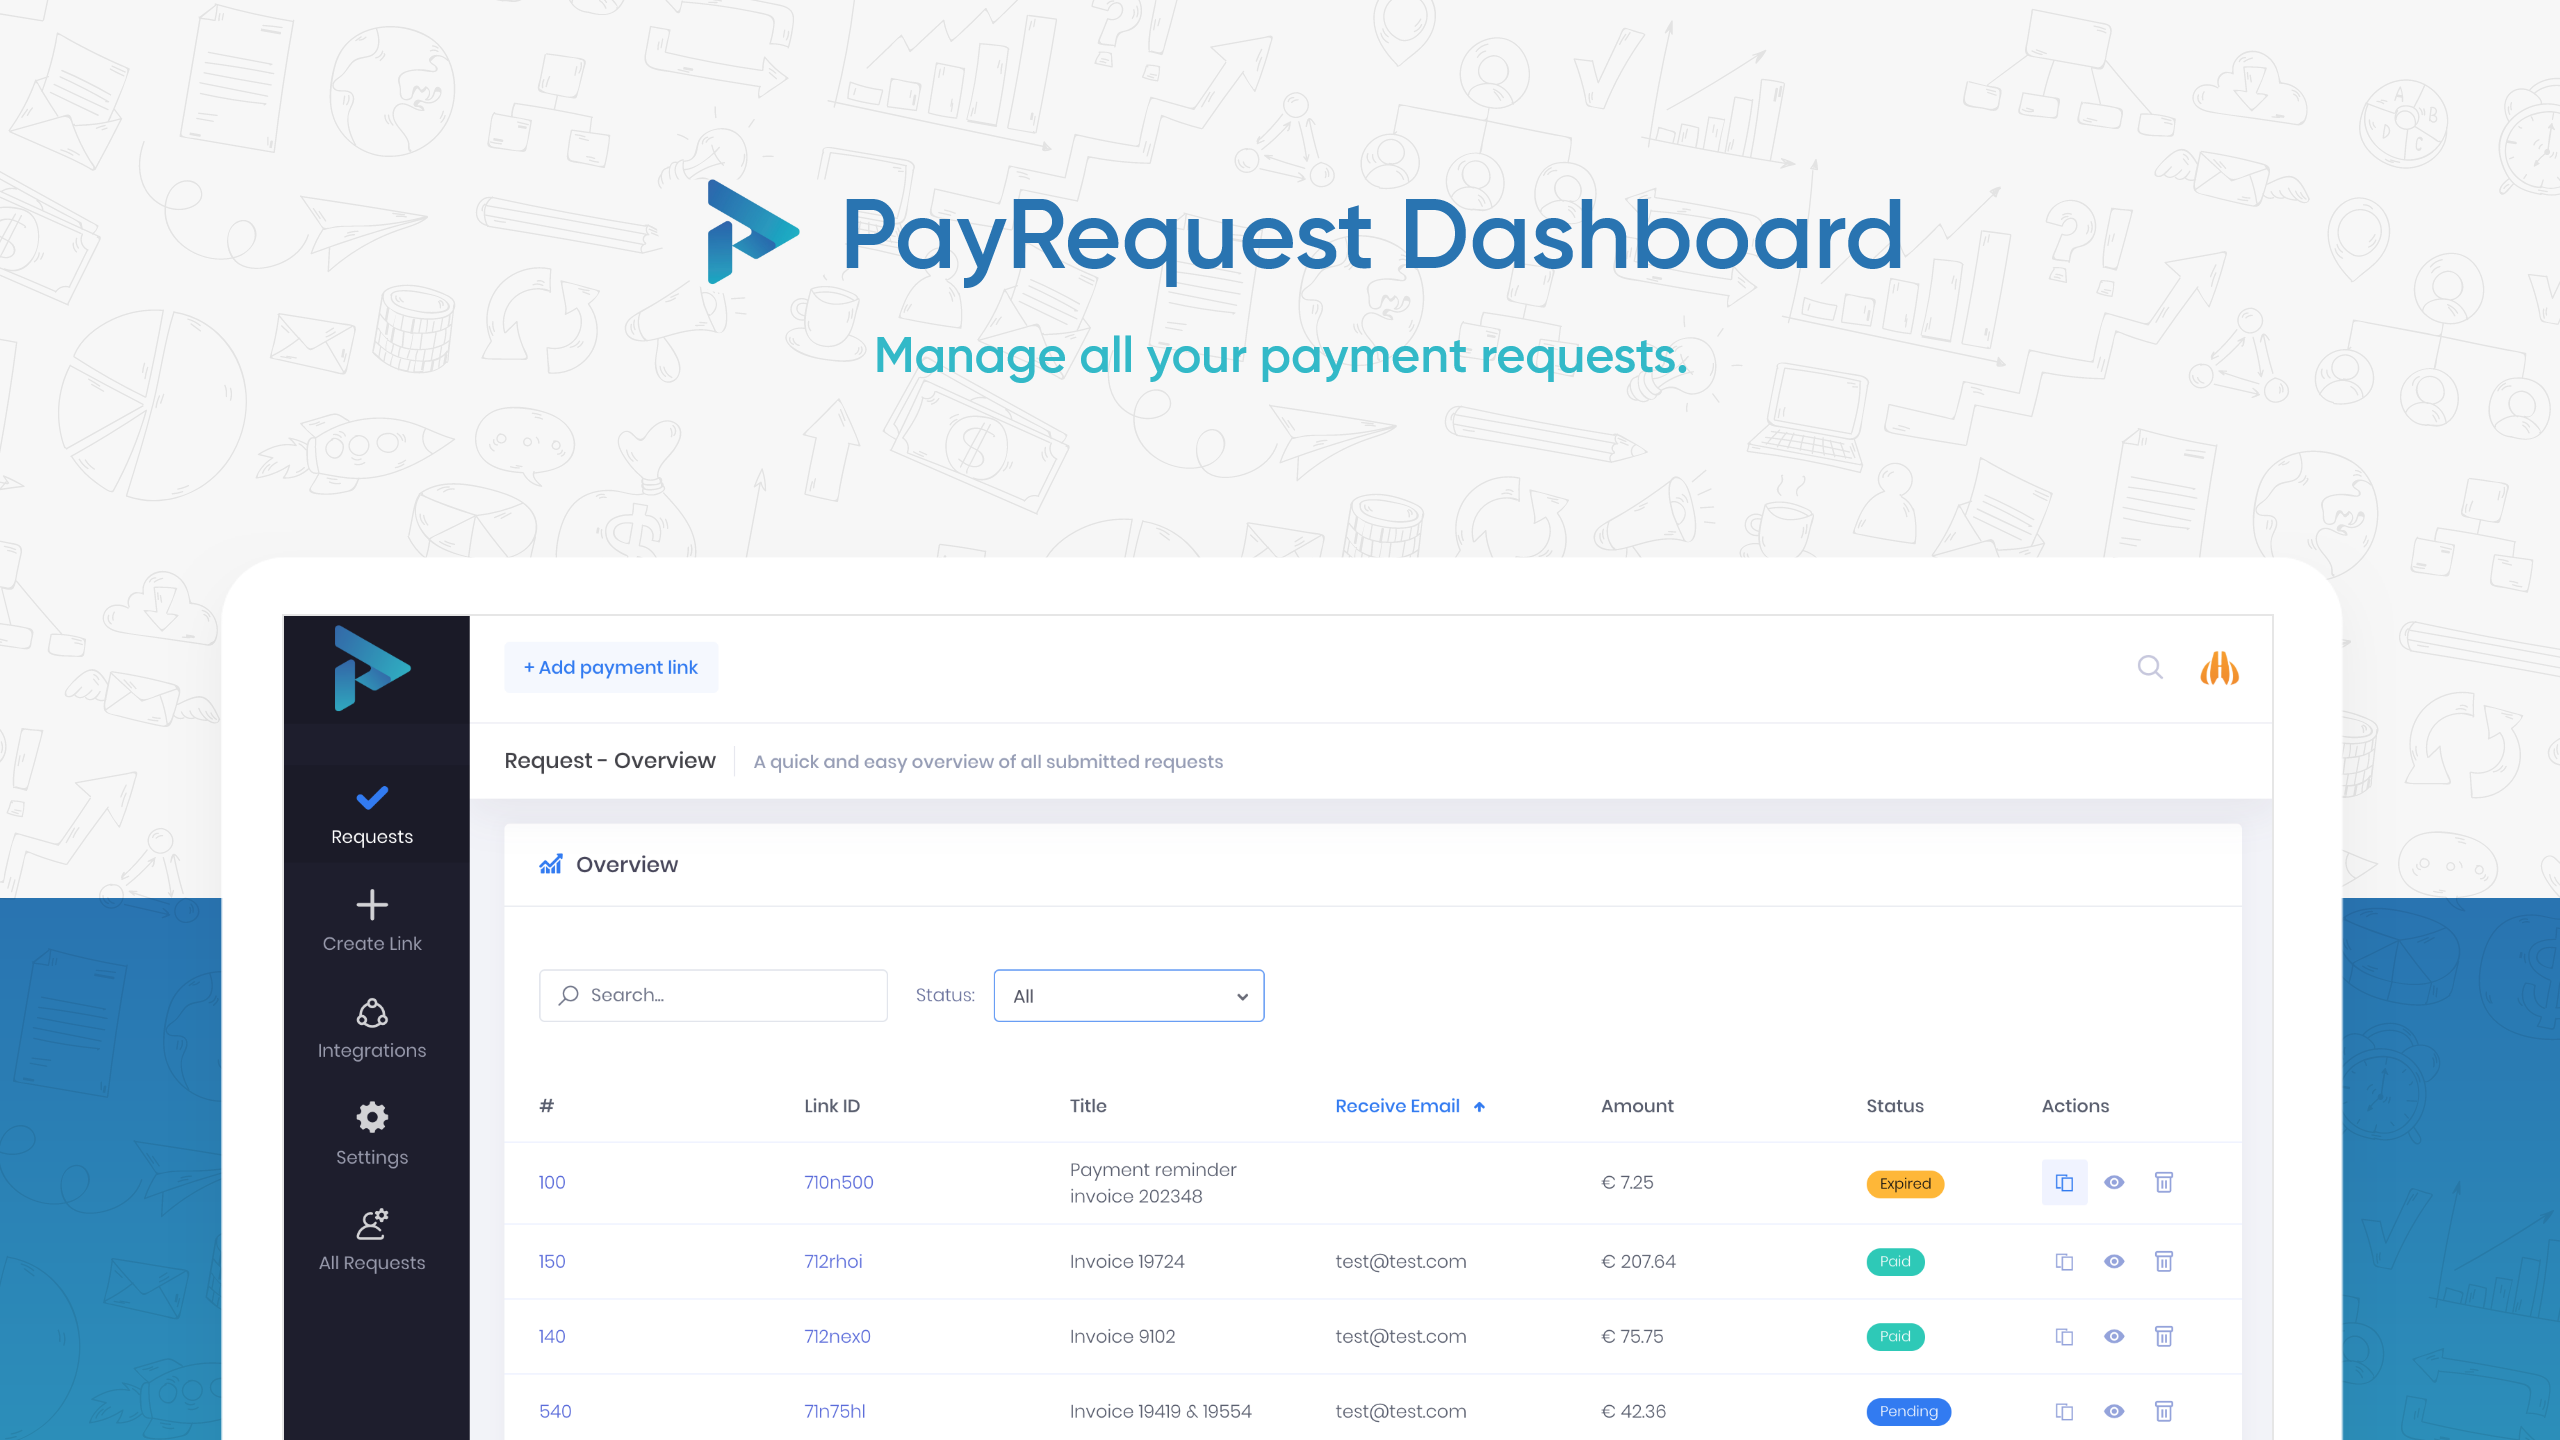 Payrequest Dashboard